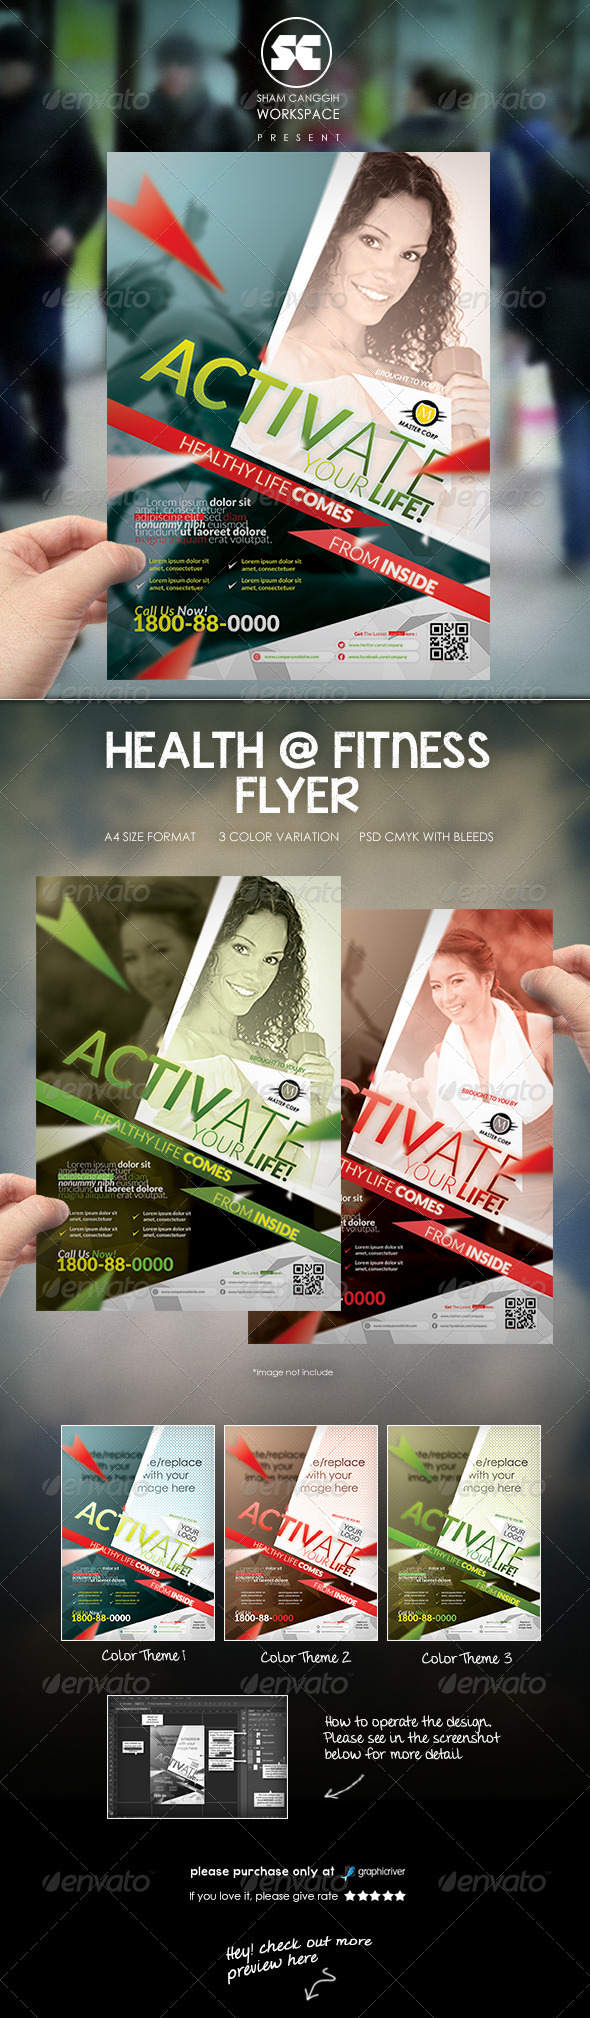 Sports & Fitness Flyer/Magazine Ads - Sports Events